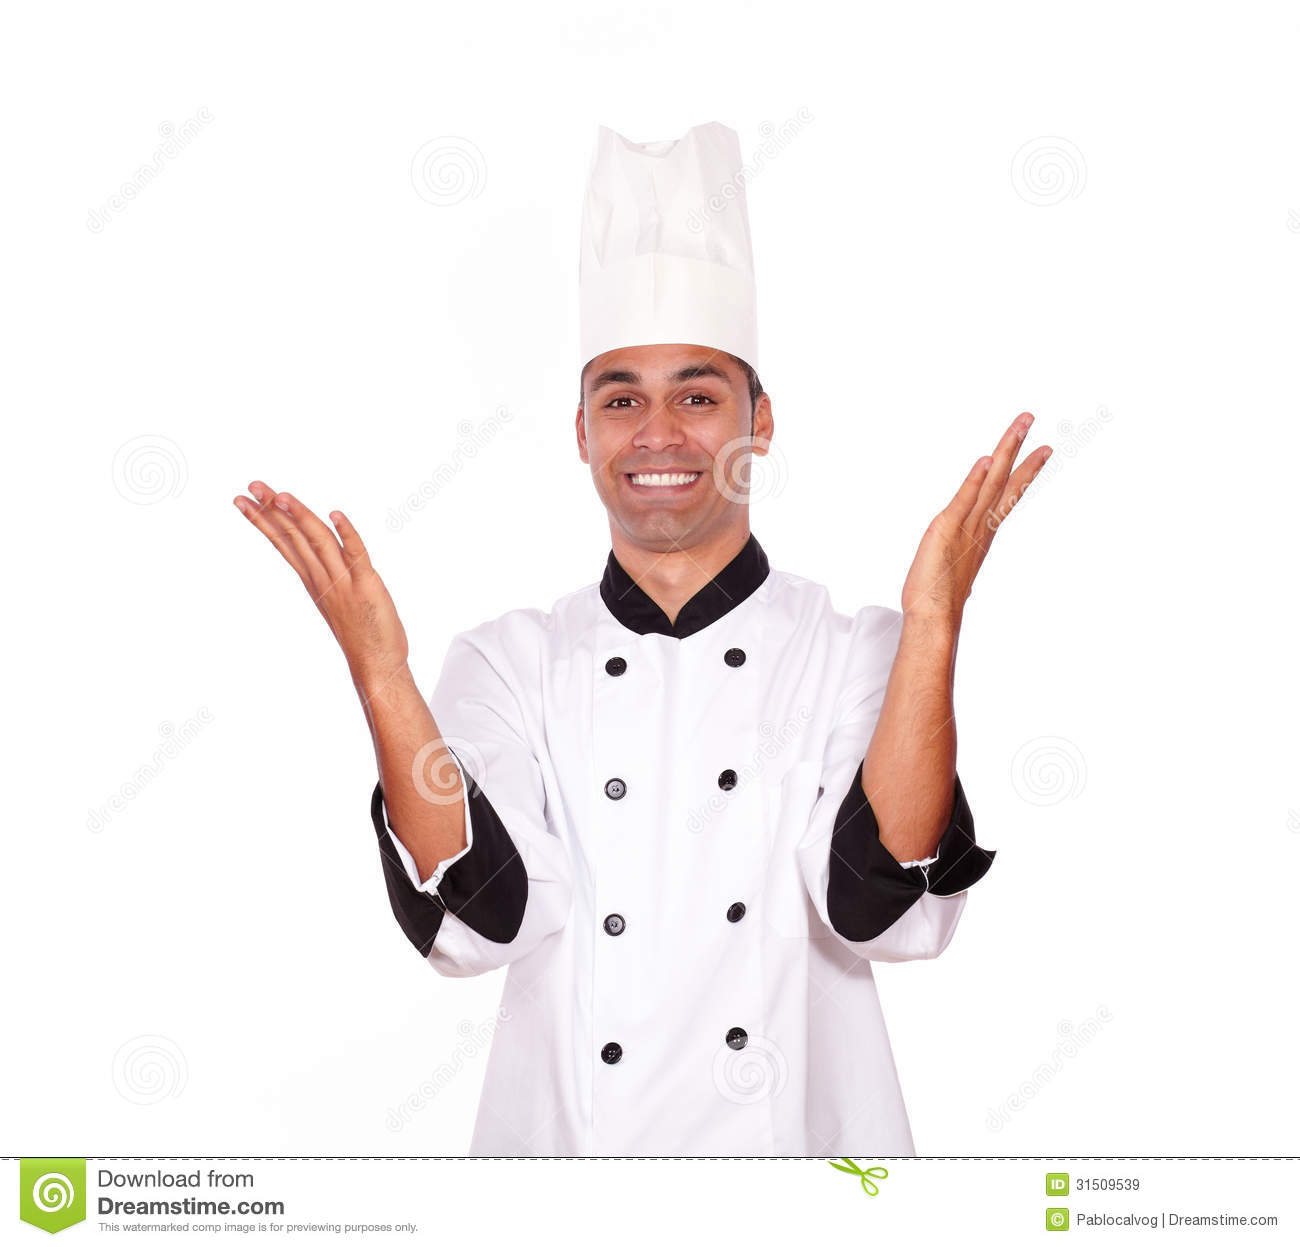 Excited male chef standing with hands up